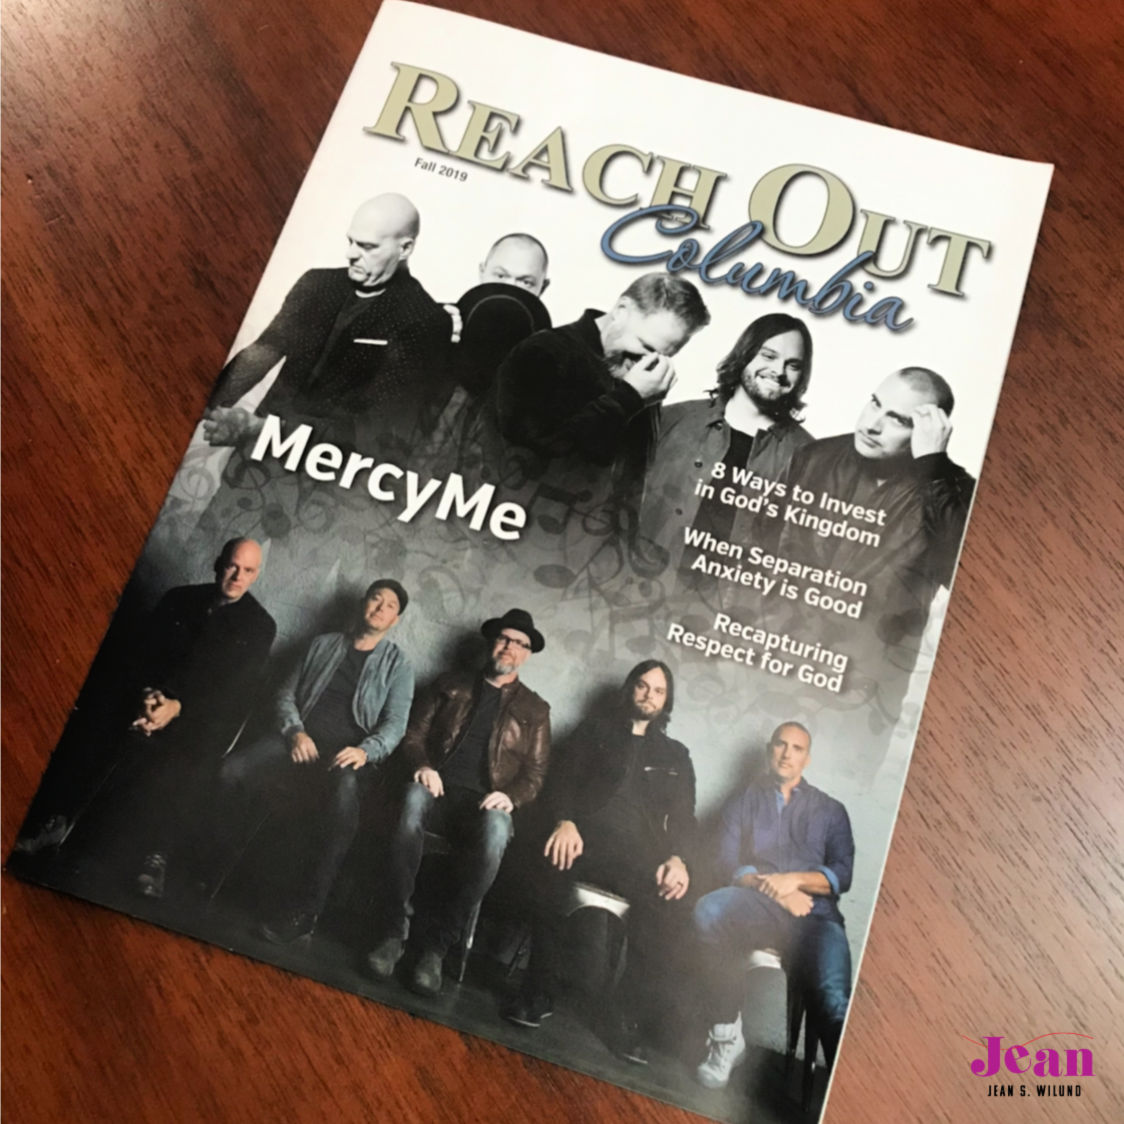 MercyMe guitarist Mike Scheuchzer talks with Jean Wilund and Reach Out, Columbia about their #1 songs I Can Only Imagine, God With Us, and other great moments.